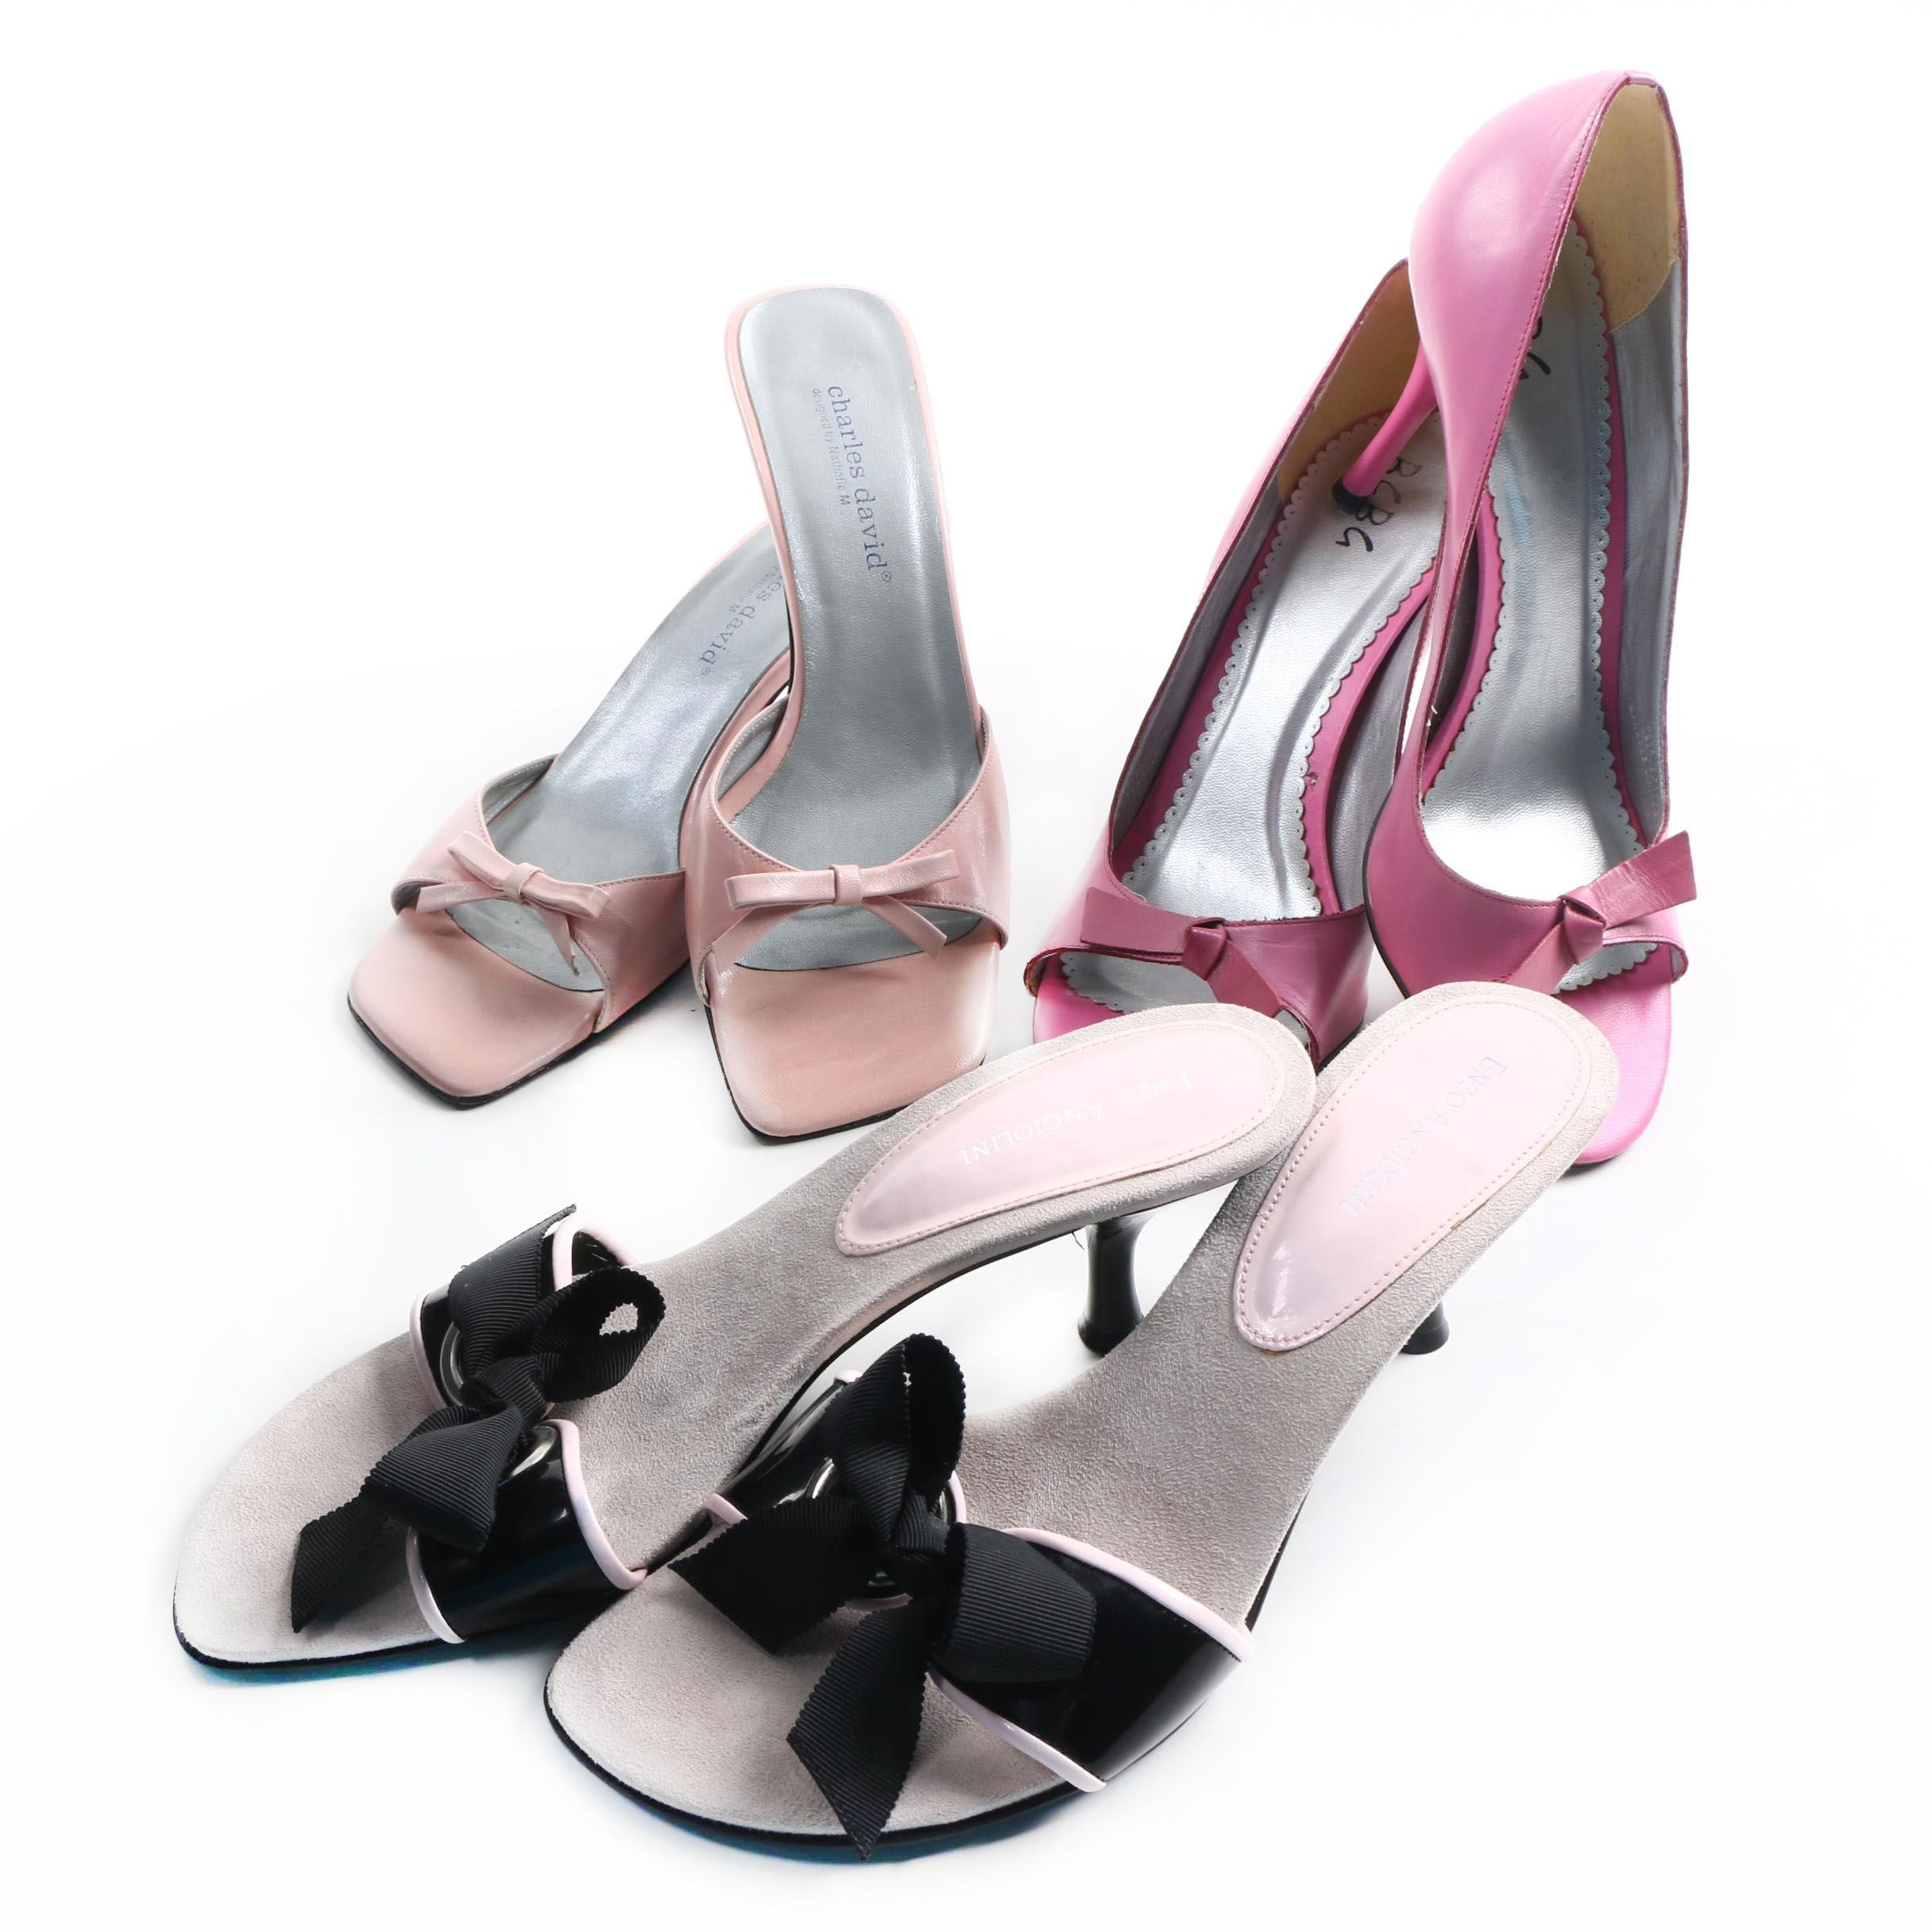 Women's Shoes Including Enzo Angiolini